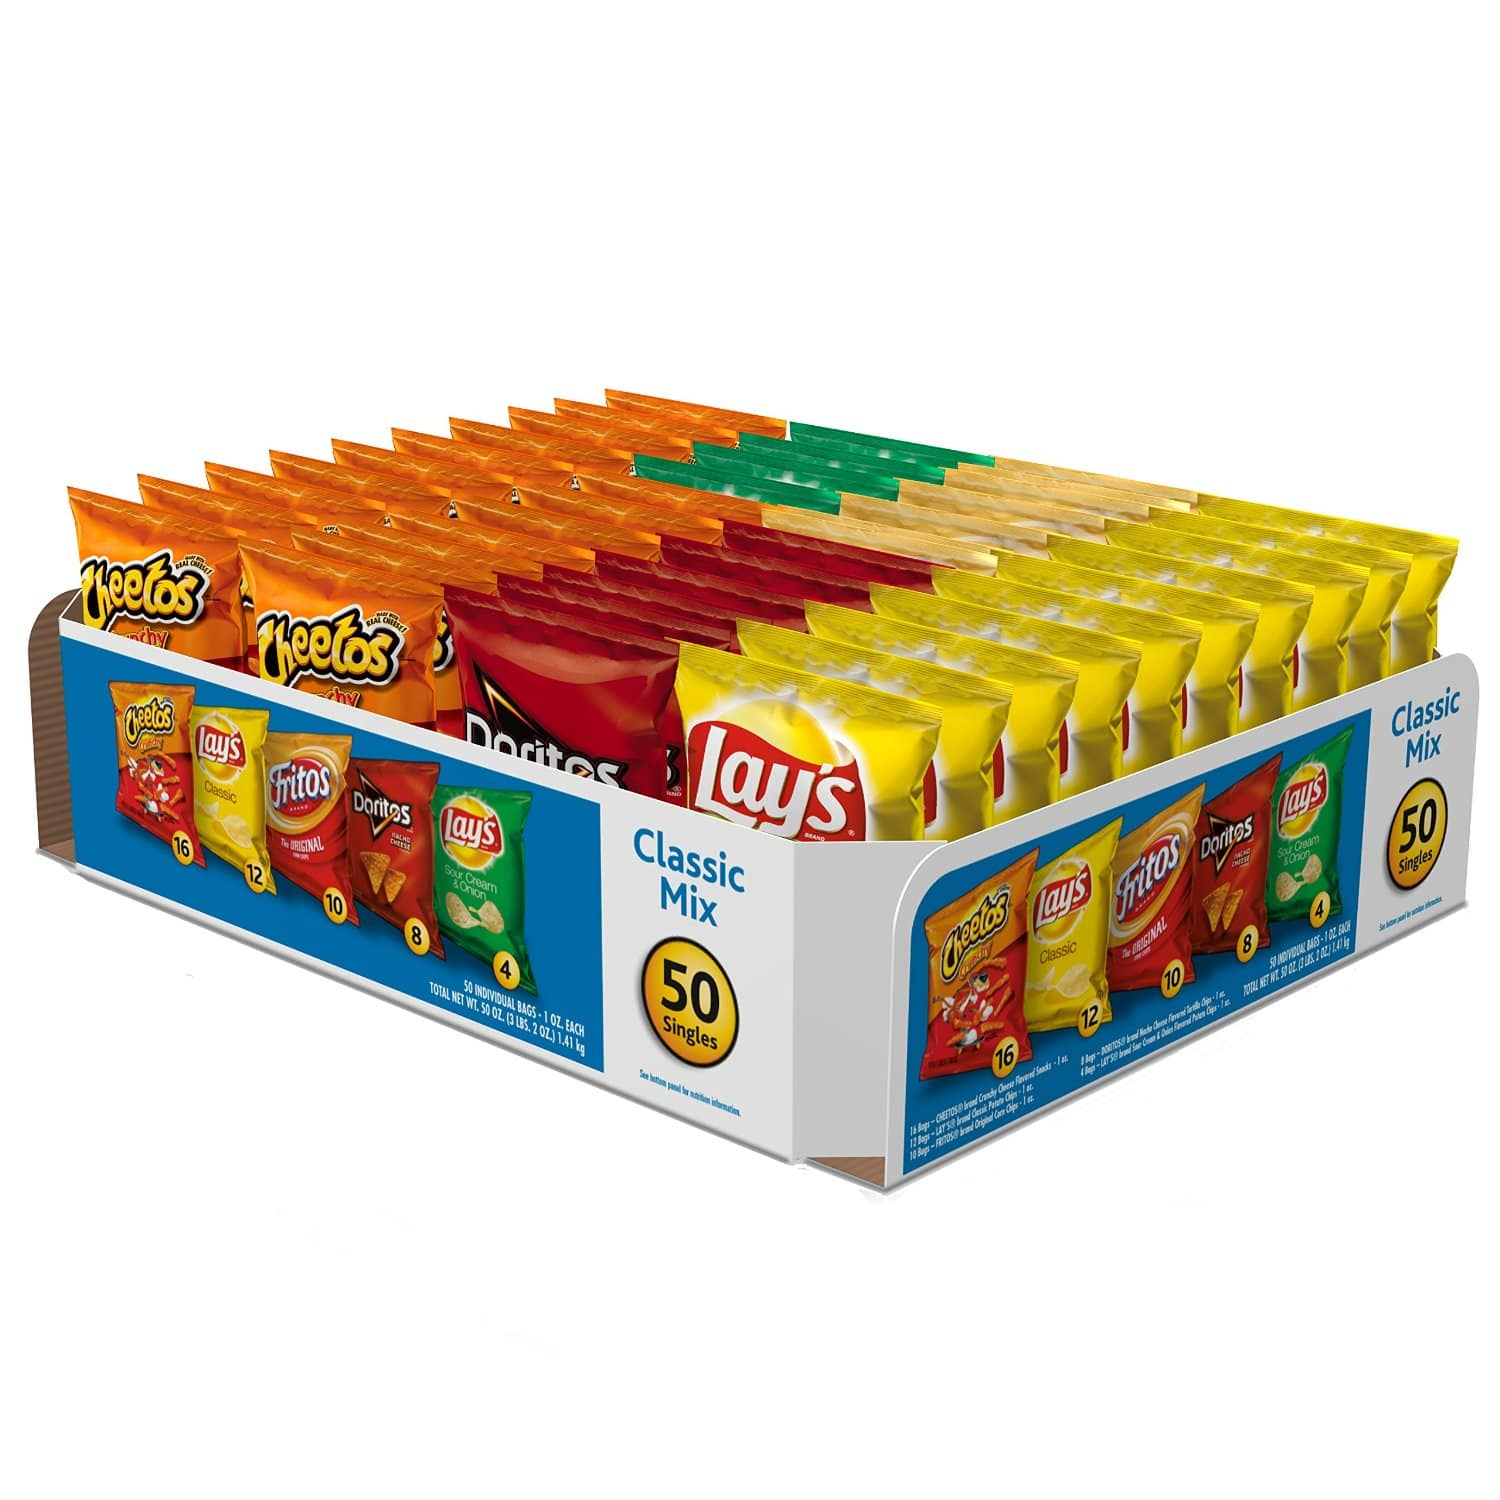 2-Pack of 50-Ct Frito-Lay Classic Mix Variety Pack $19.28 or less + free shipping @ Amazon